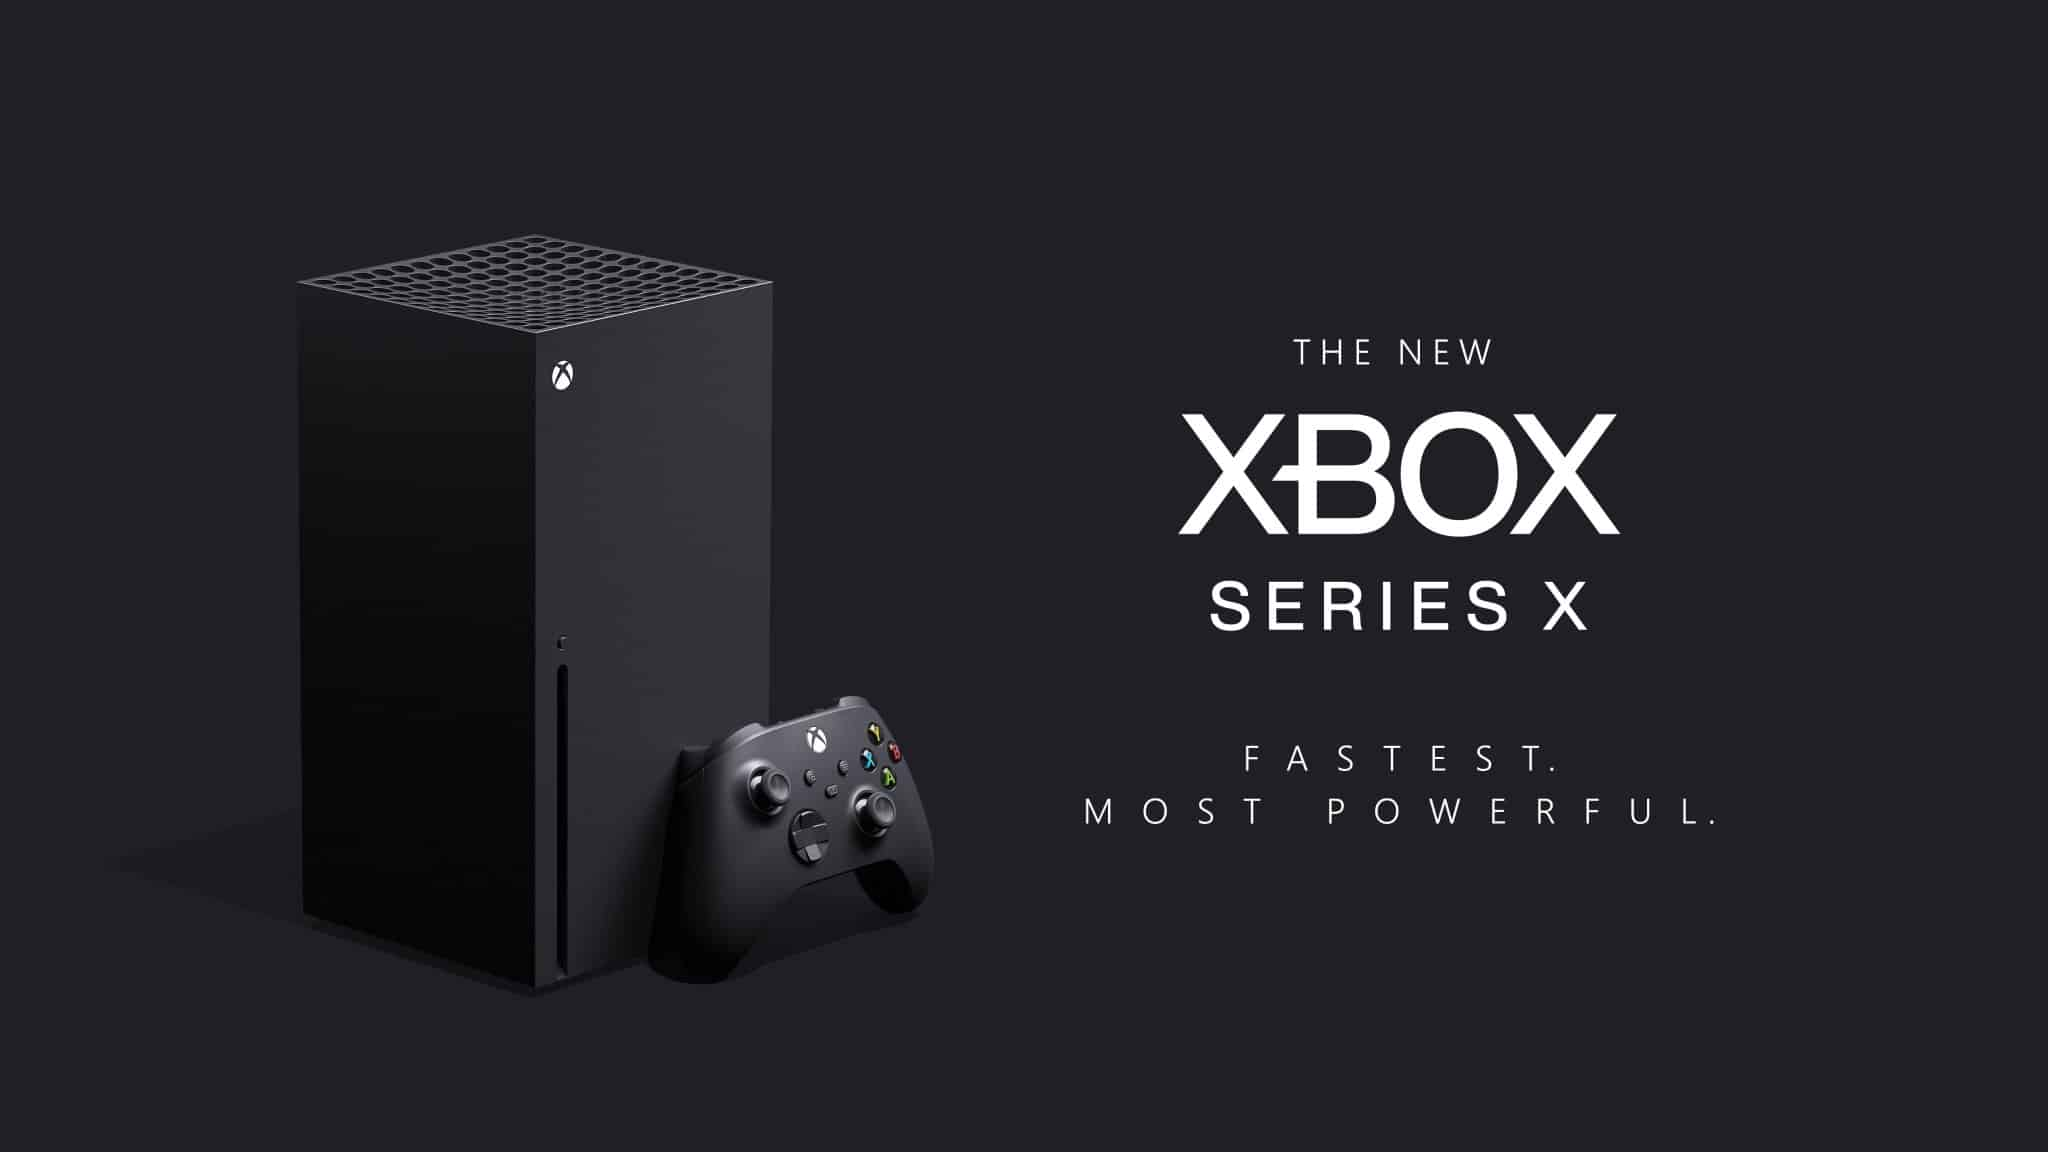 Xbox Series X is coming holiday 2020